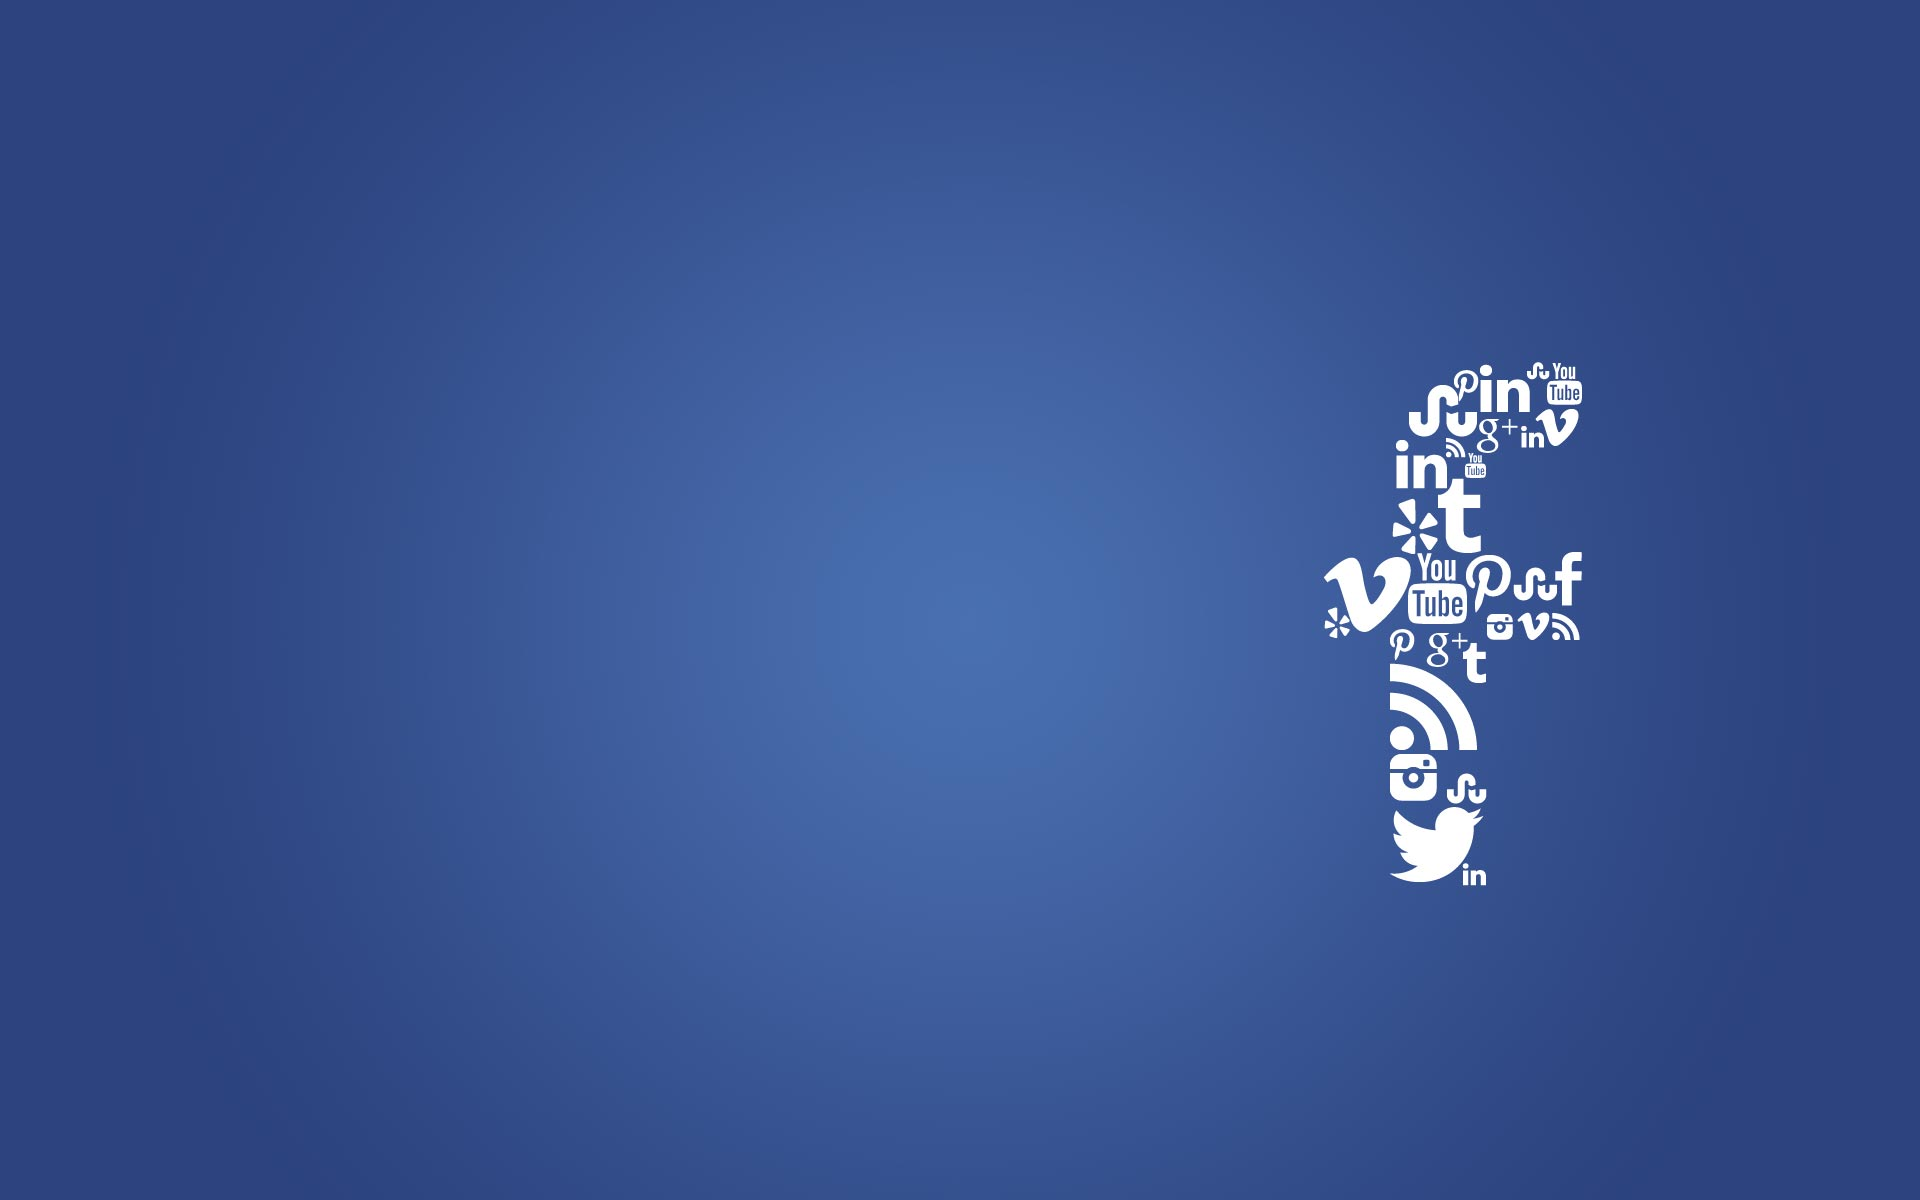 Facebook Logo Design Wallpaper size 1920x1200 1920x1200